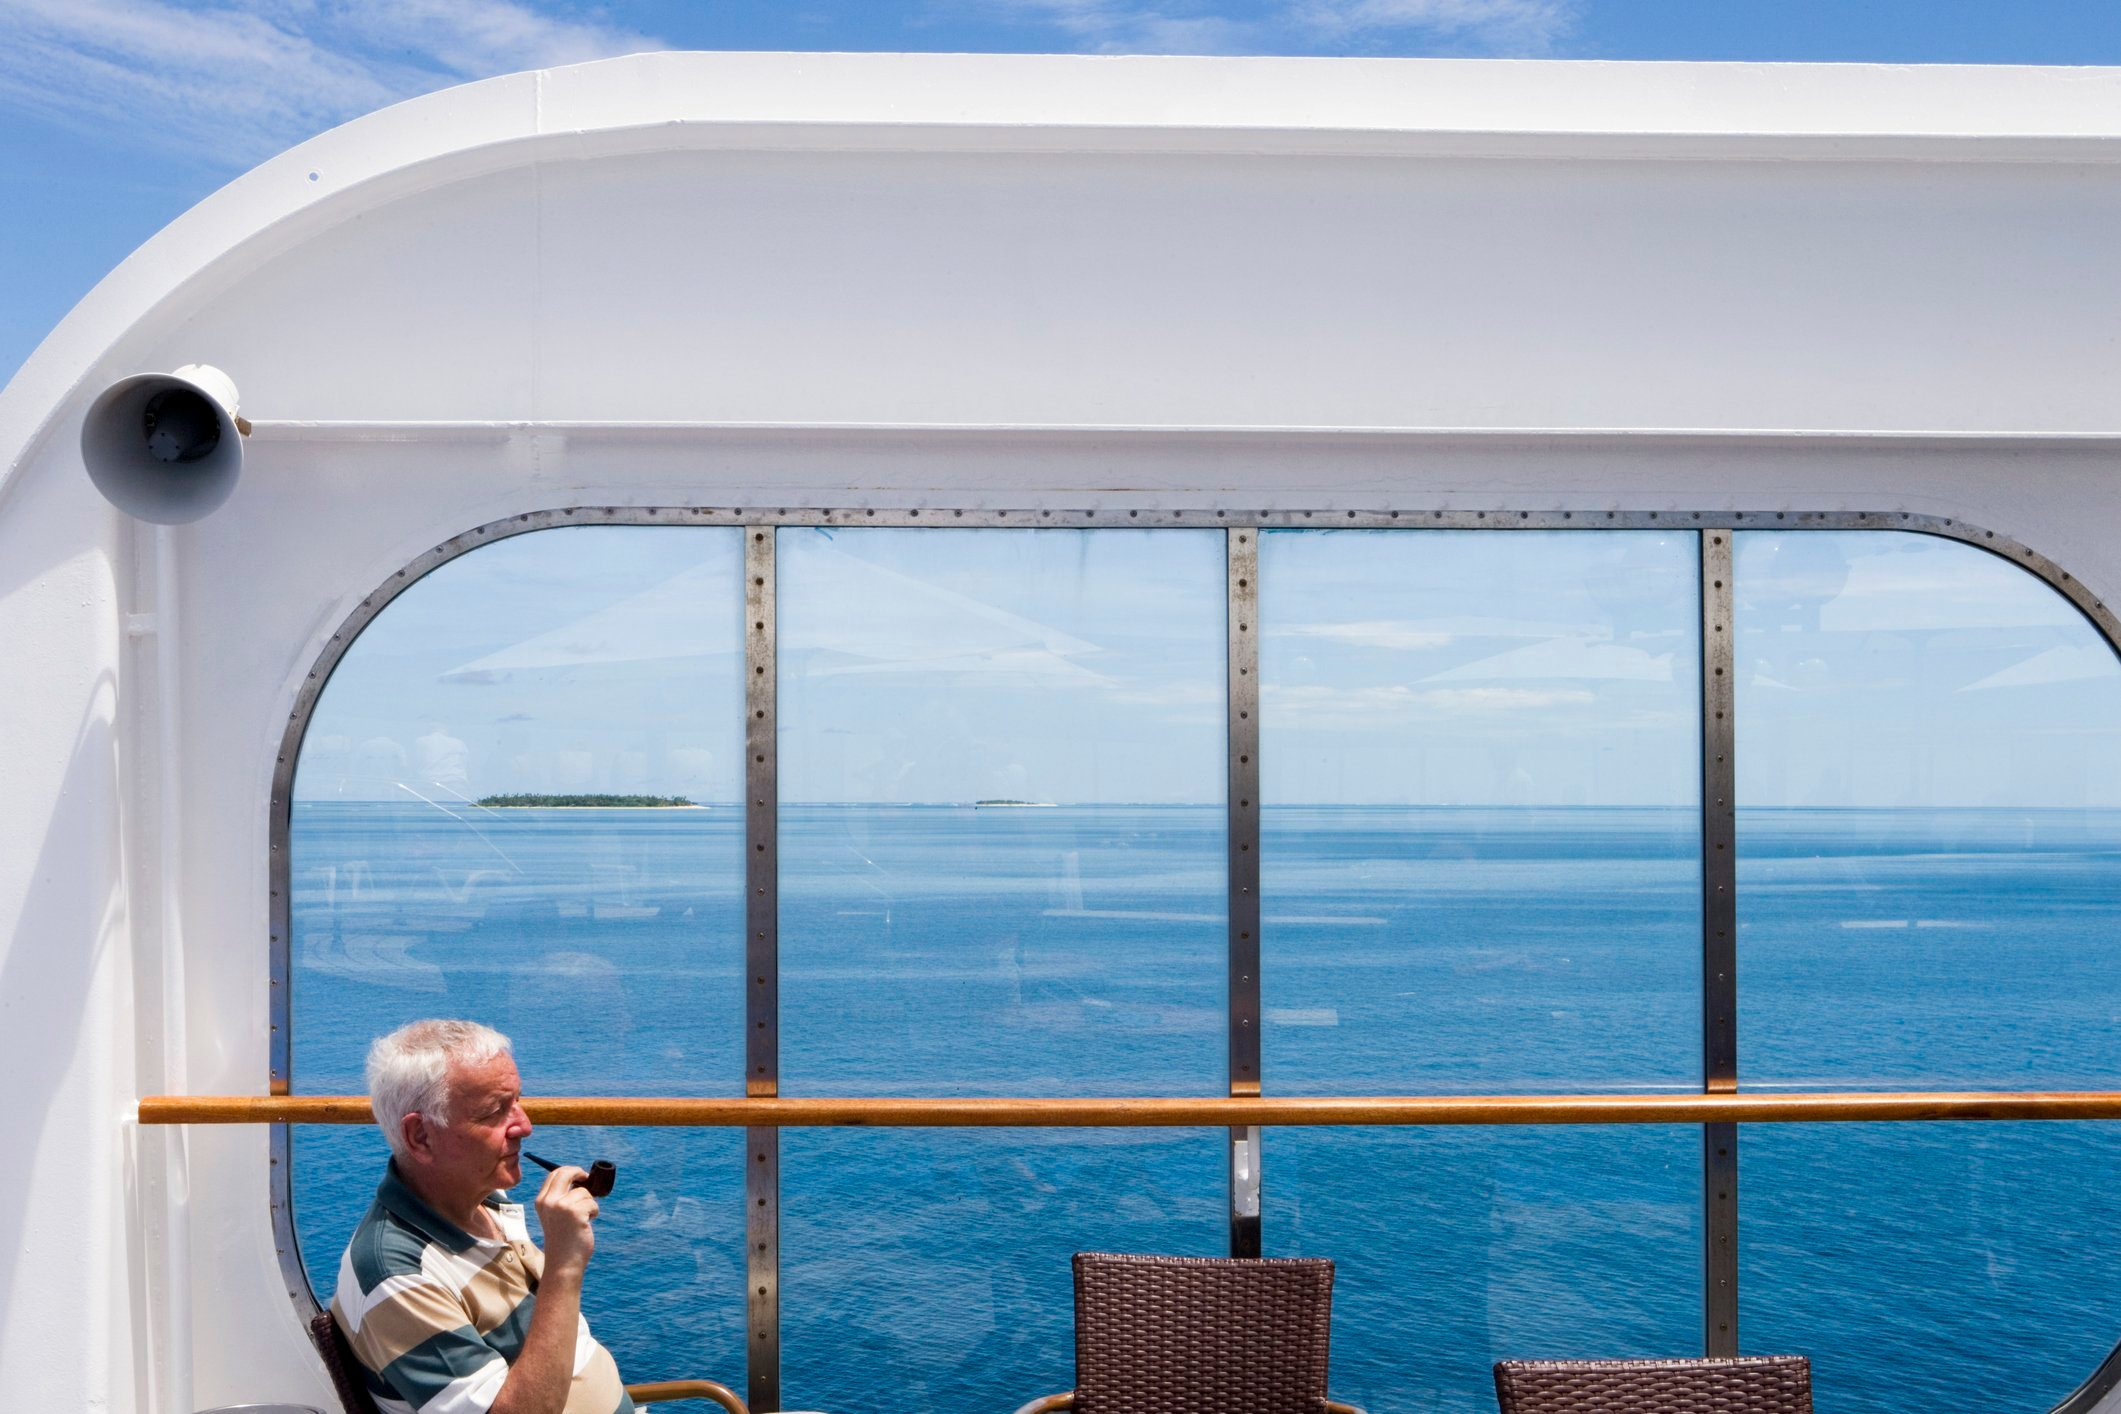 Man enjoys pipe aboard cruiseship MV Columbus (Hapag-Lloyd Cruises) during passage through islands of Mamanuca Group.